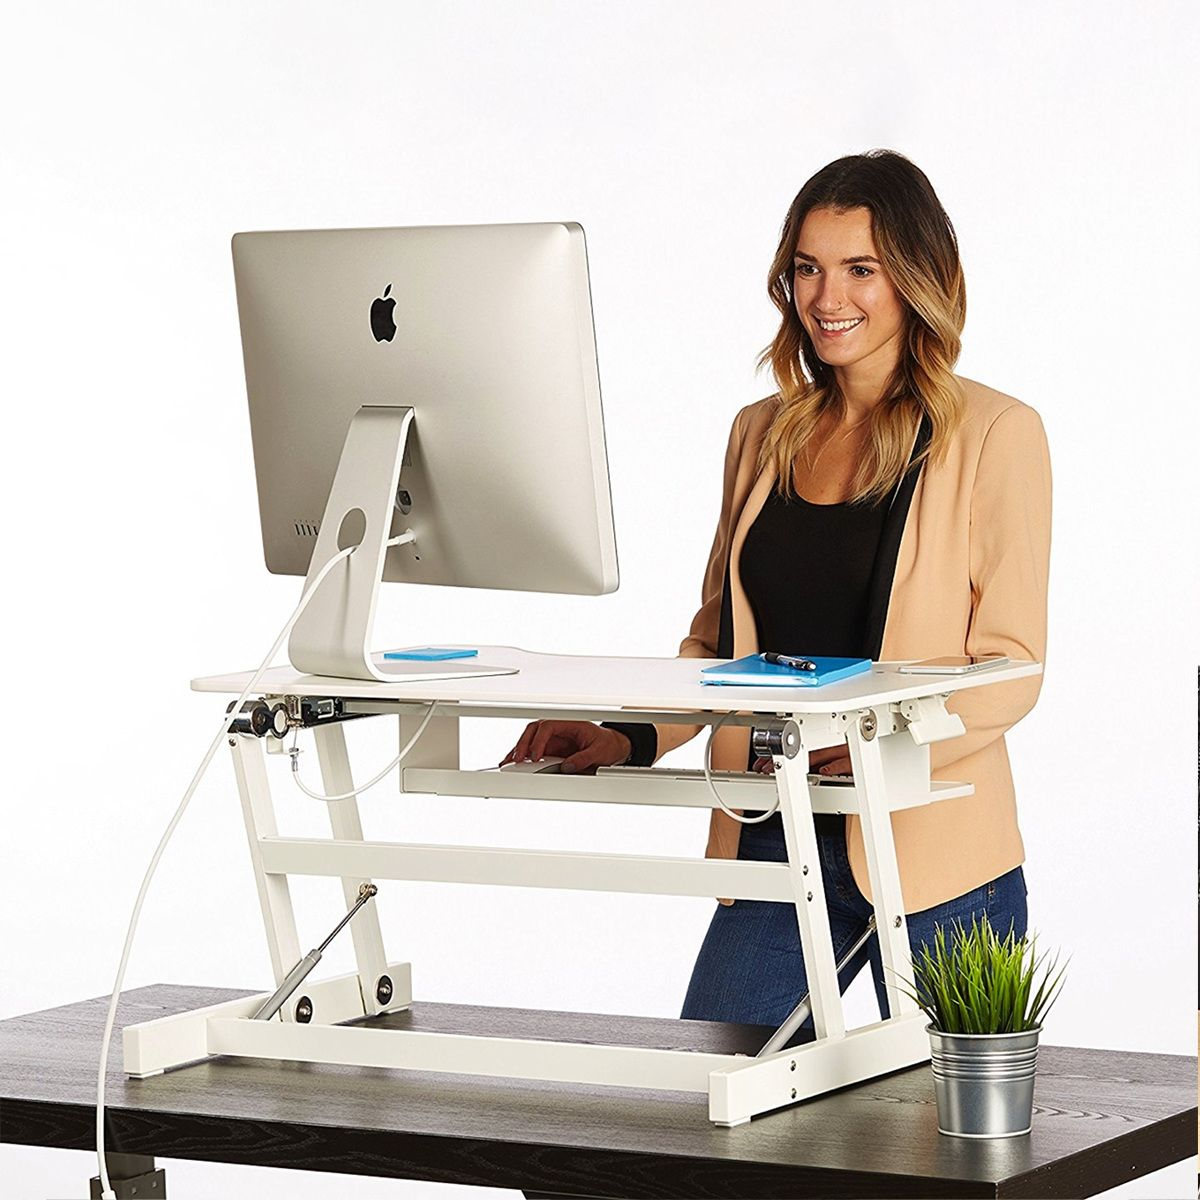 Stand Up Office Desk Expensive Home Office Furniture Check More At Http Www Drjamesghoodblog Com Stand Up Office Desk